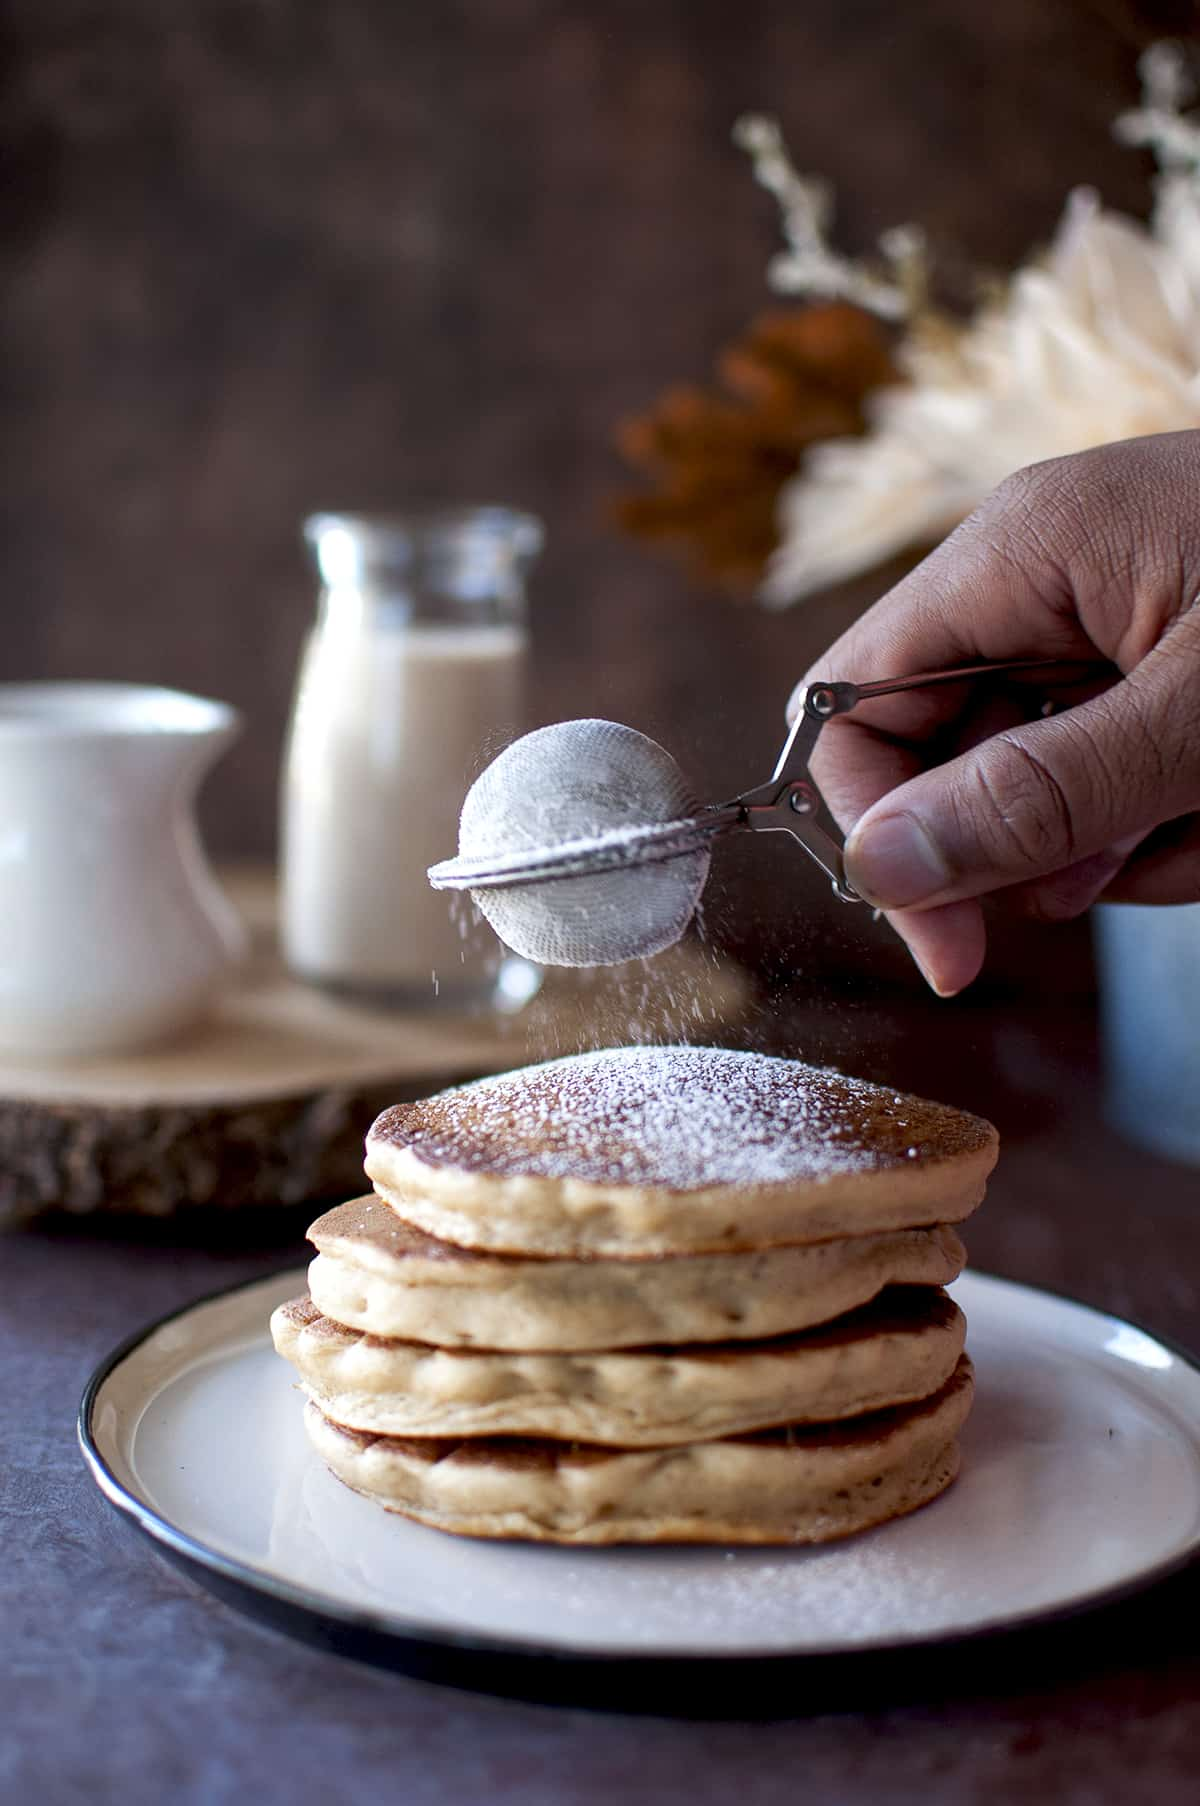 Hand sprinkling powdered sugar on a stack of pancakes